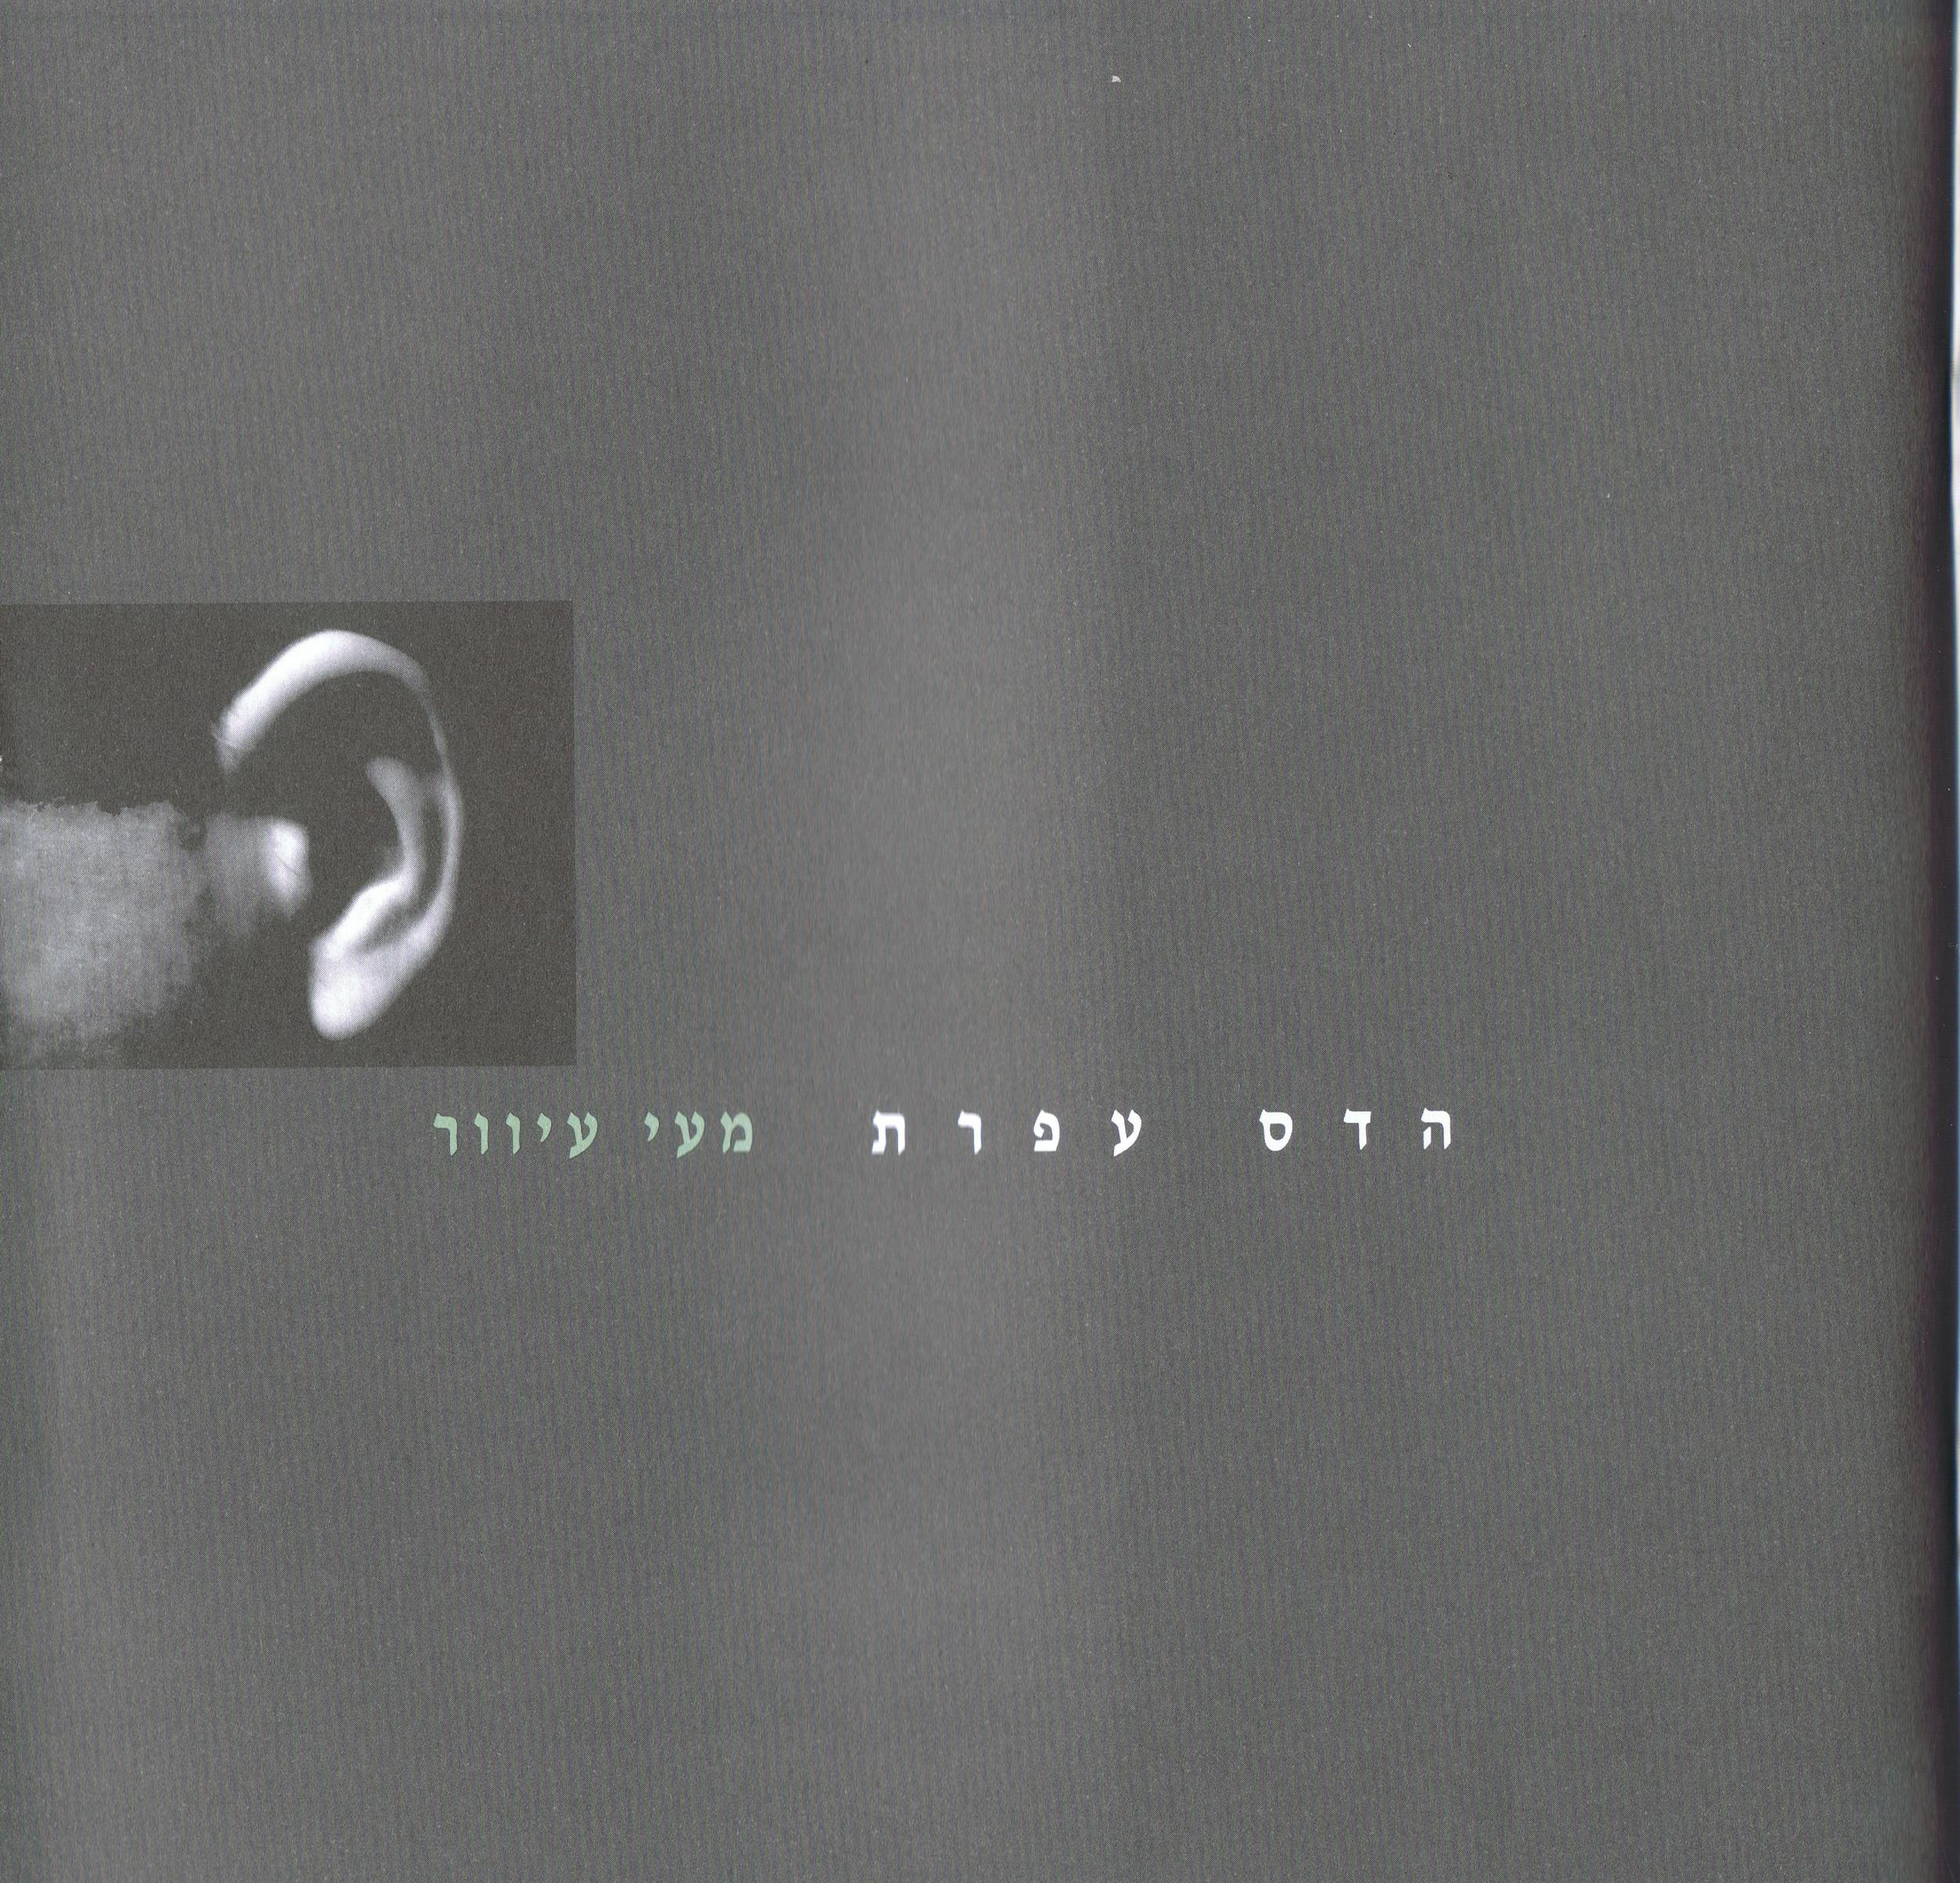 Blind Gut, Catalog (Hebrew & English), Exhibitions at Be'eri and Nachshon kibbutz Galleries,  2002